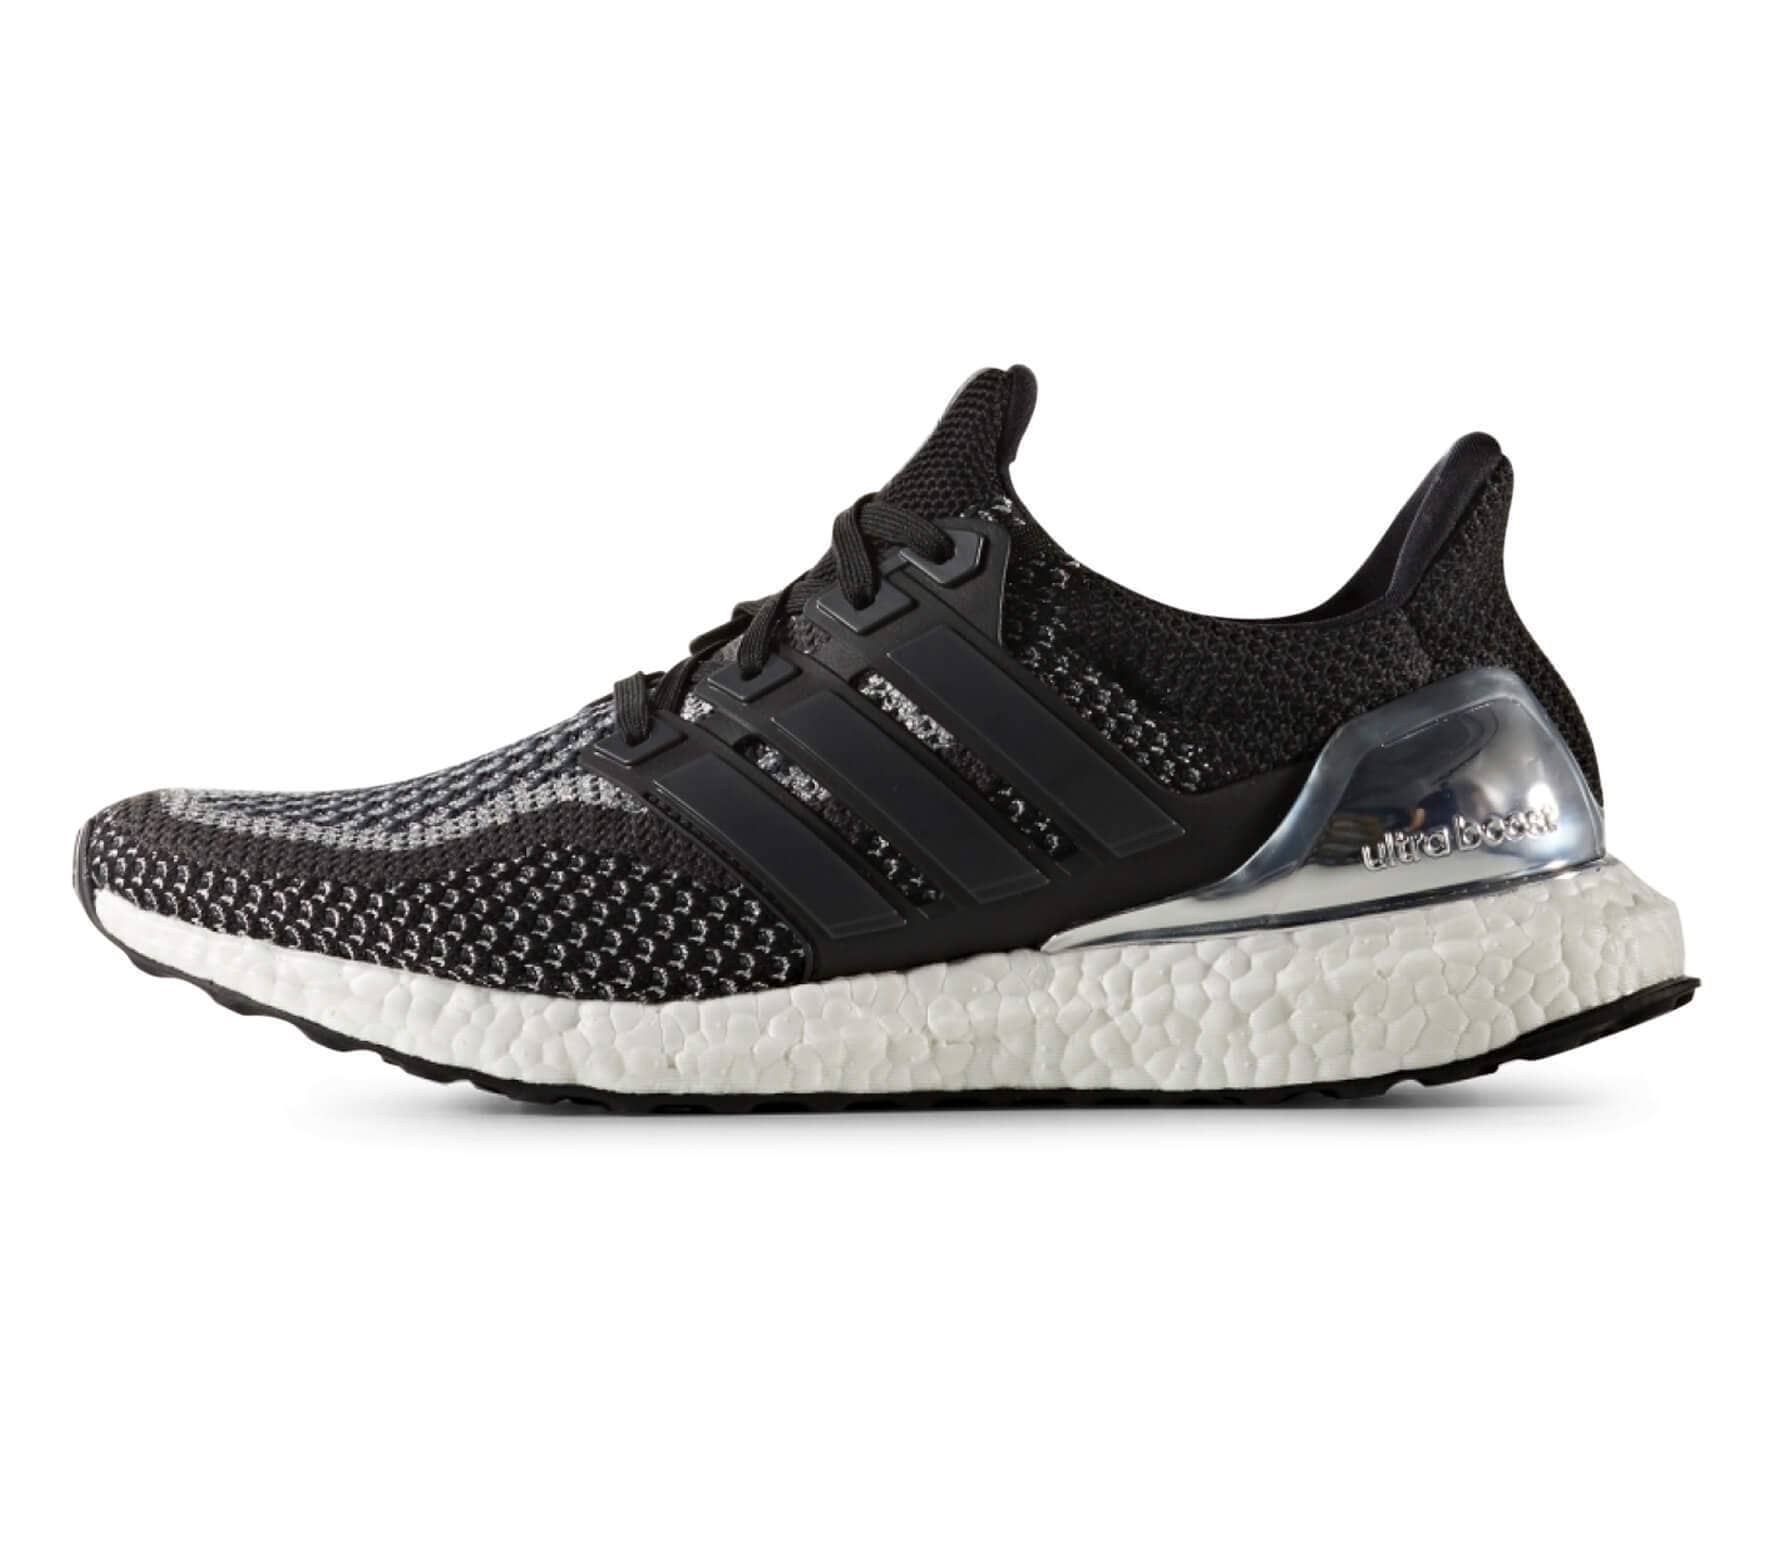 low priced 5e0ab 2d19d ... switzerland adidas ultra boost ltd hommes chaussure de course noir  argent ac469 eed06